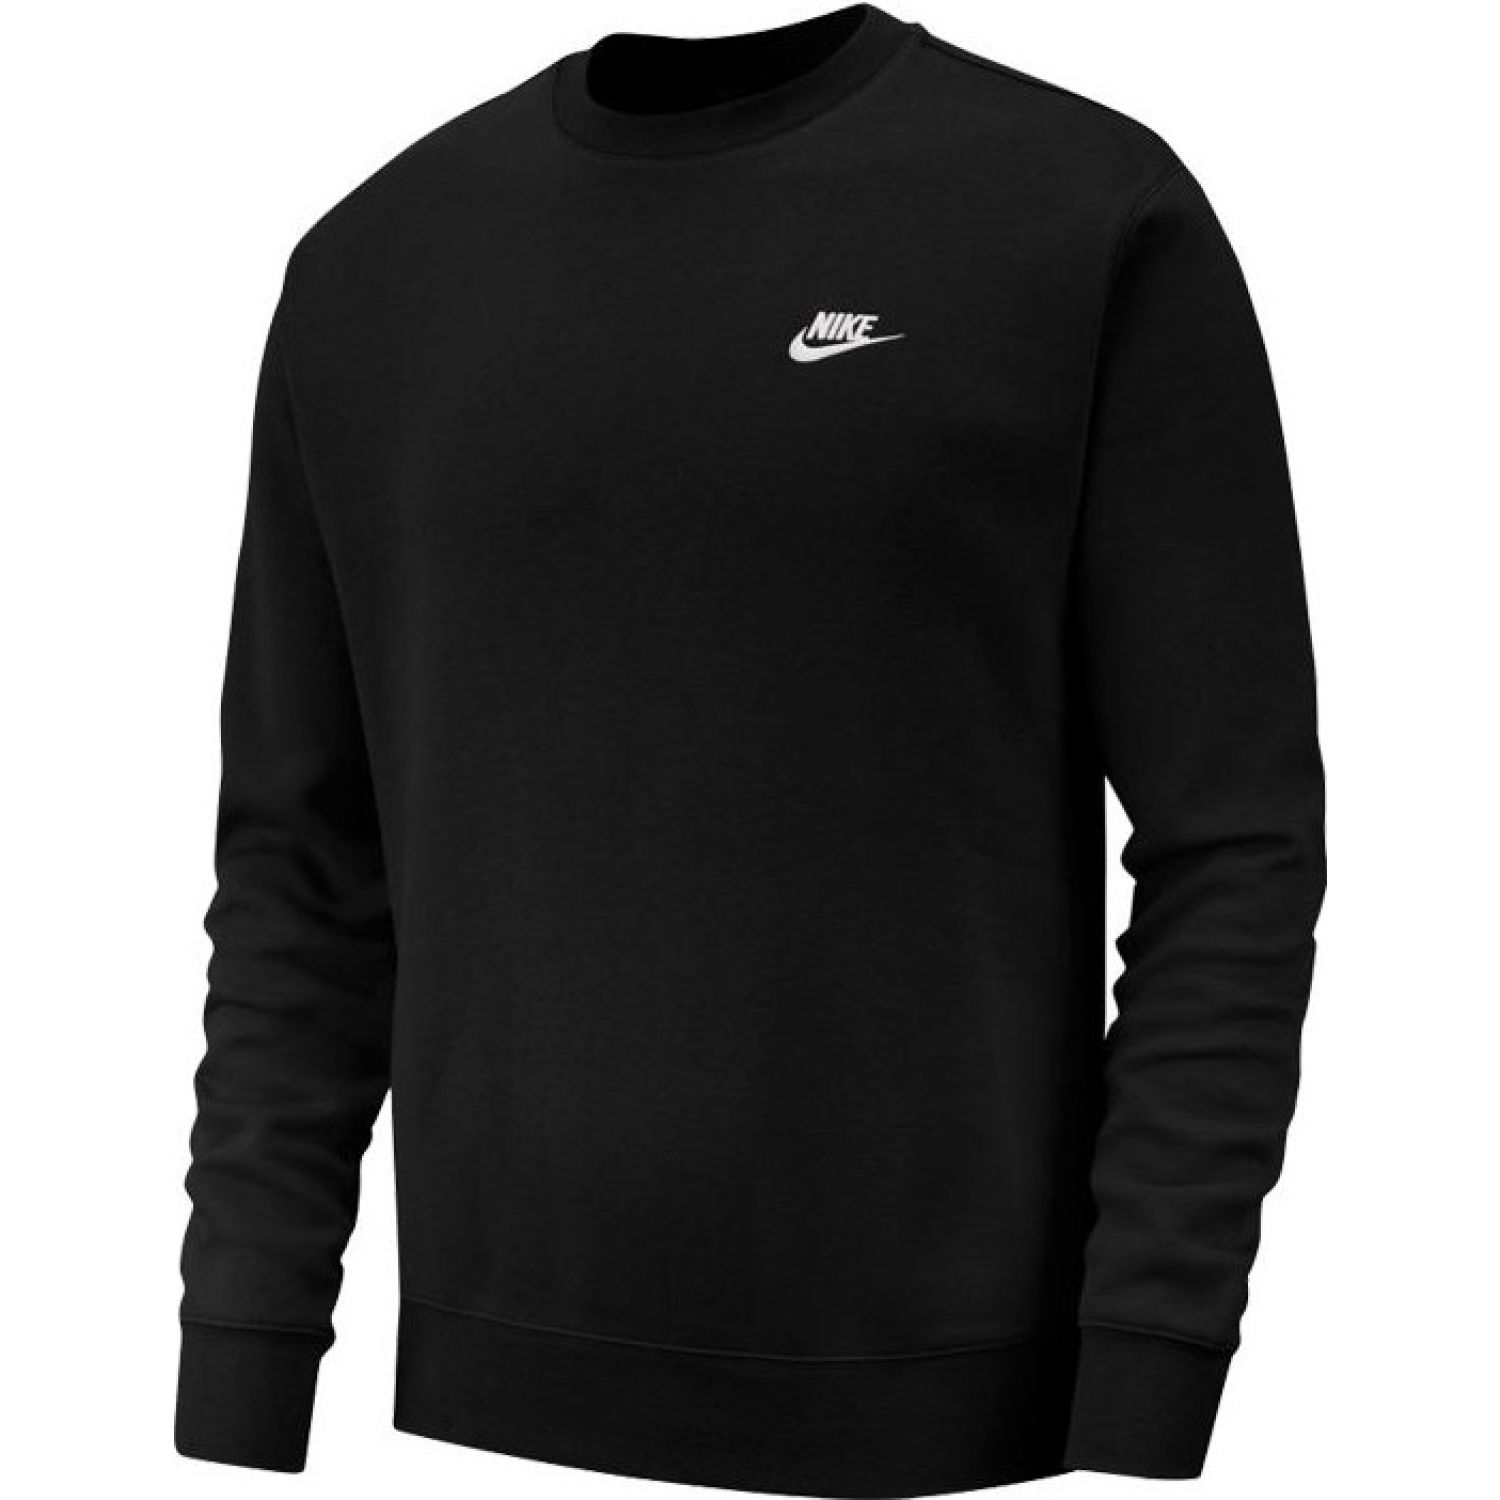 Nike M Nsw Club Crw Bb Negro / blanco Hoodies deportivos